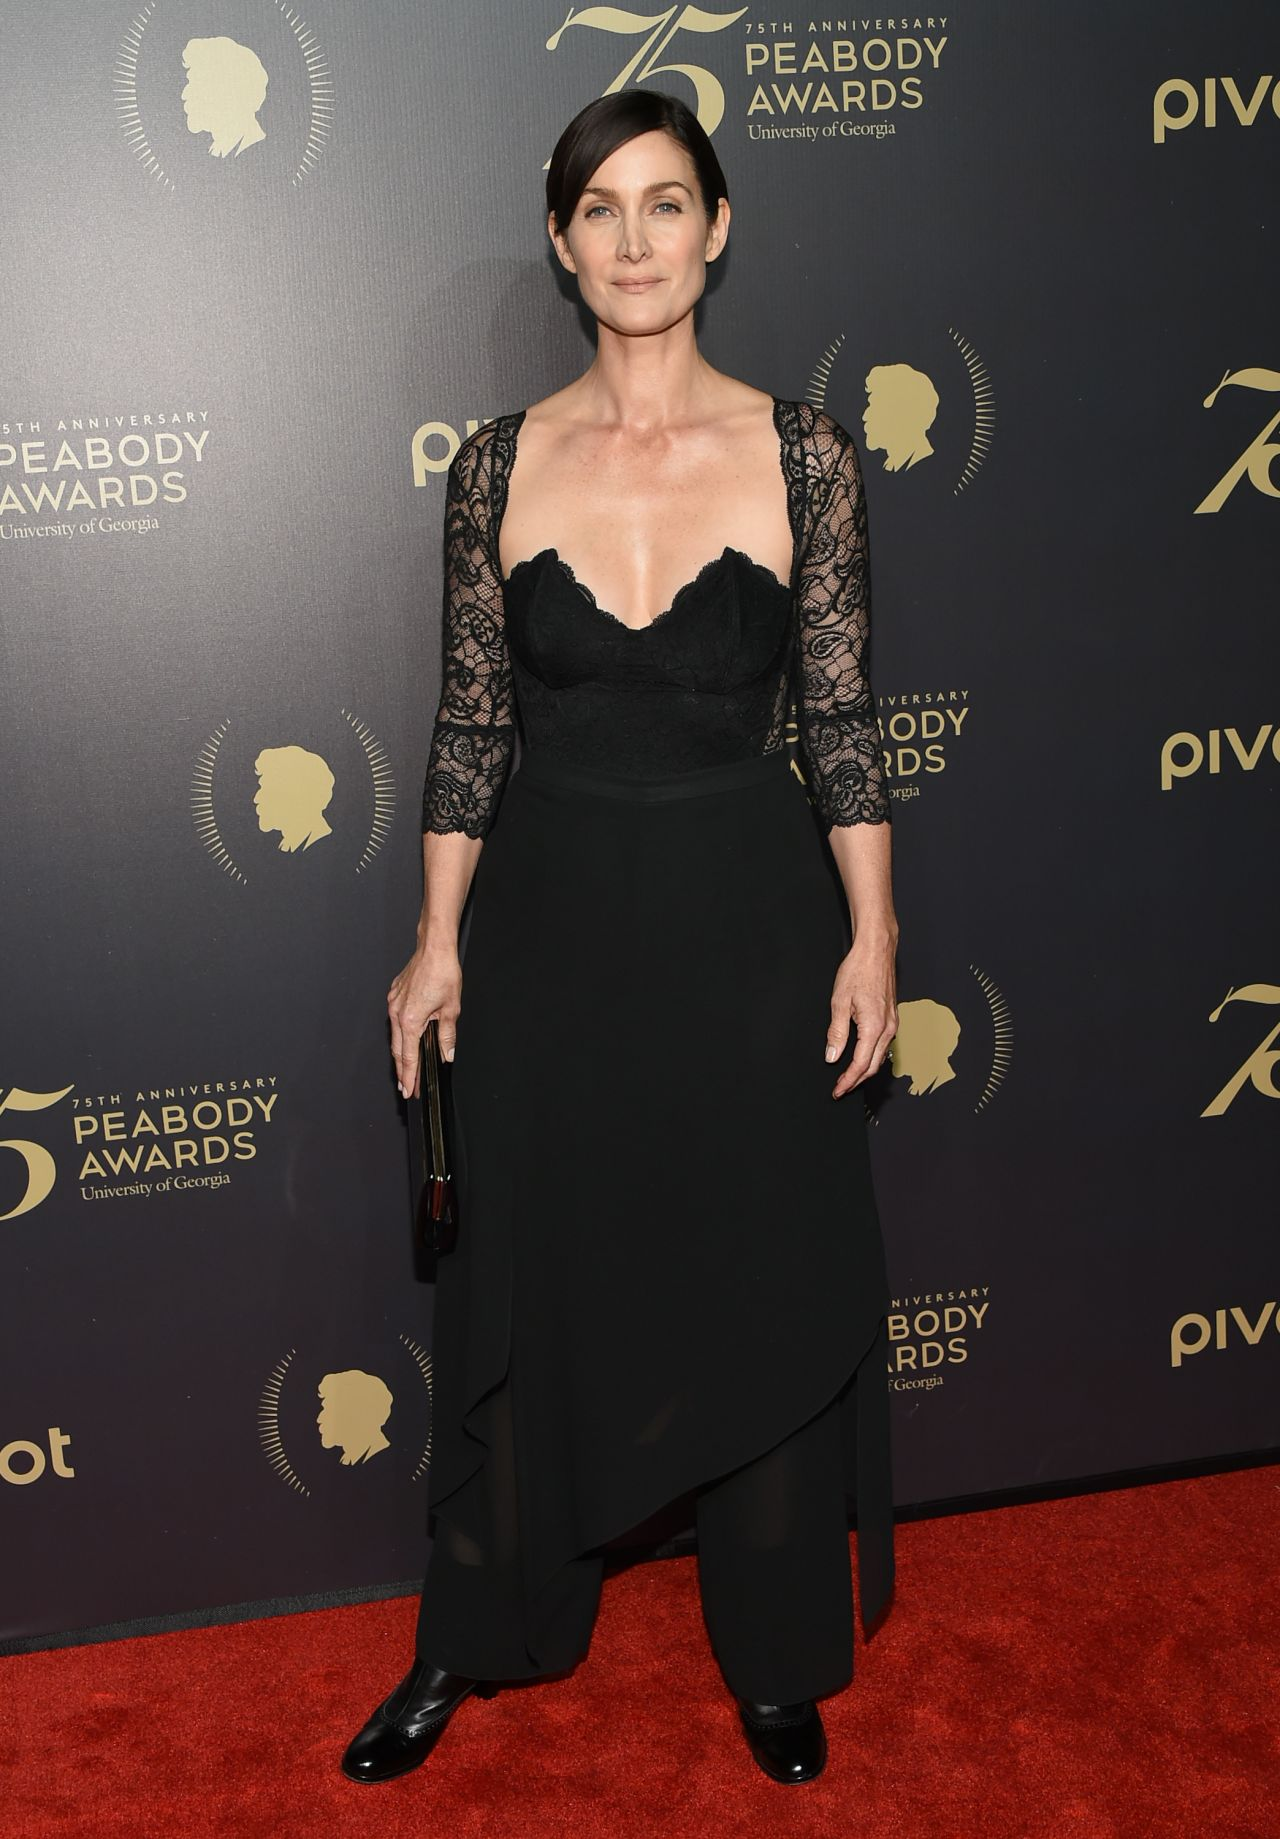 Carrie-Anne Moss - Peabody Awards Ceremony at Cipriani